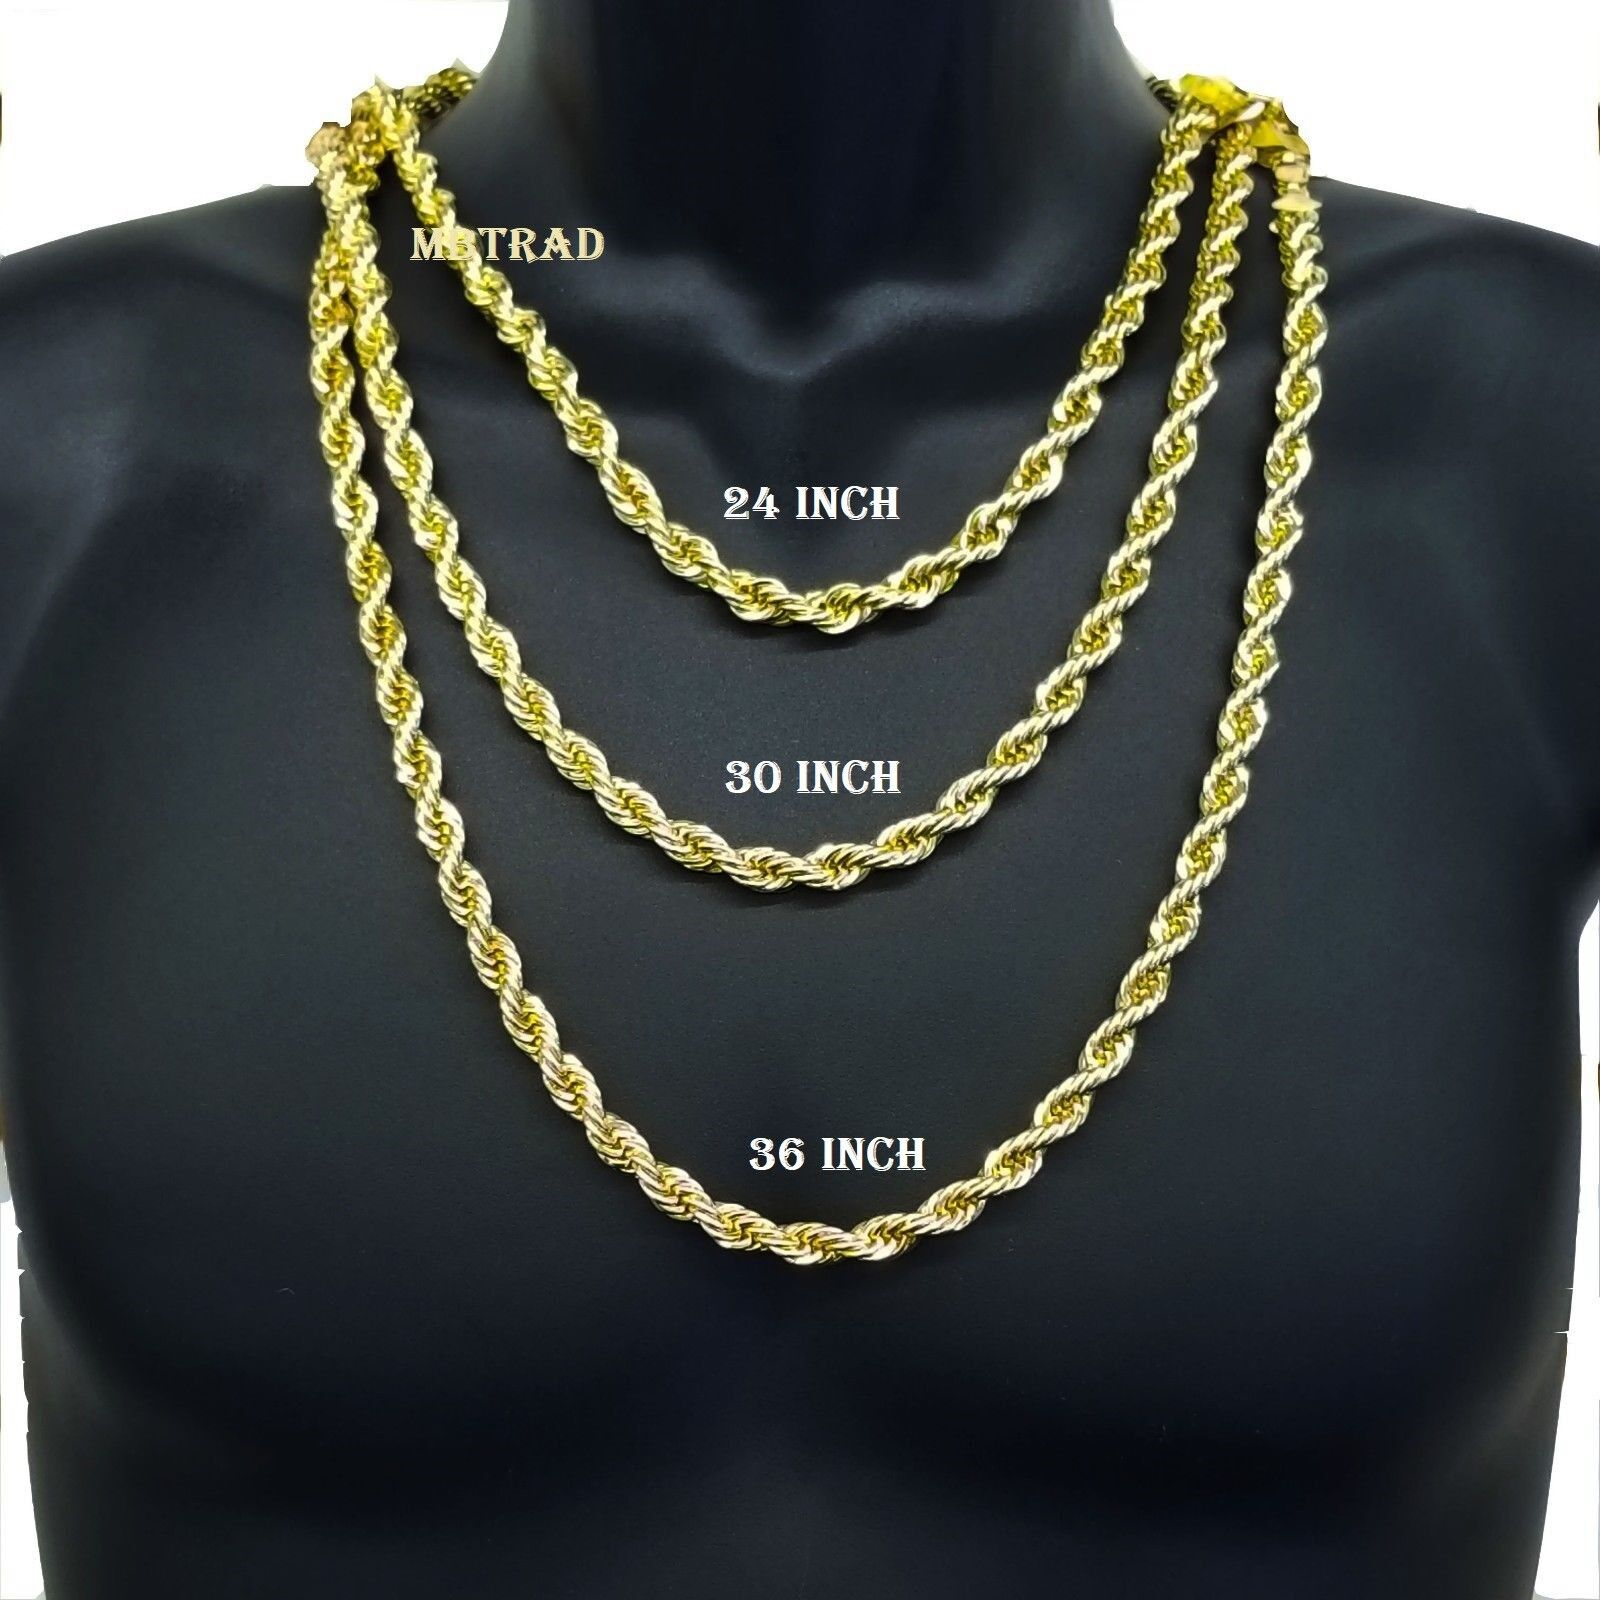 Hip Hop 14k Gold Plated 8mm Thick Heavy Rope Chain Necklace 24